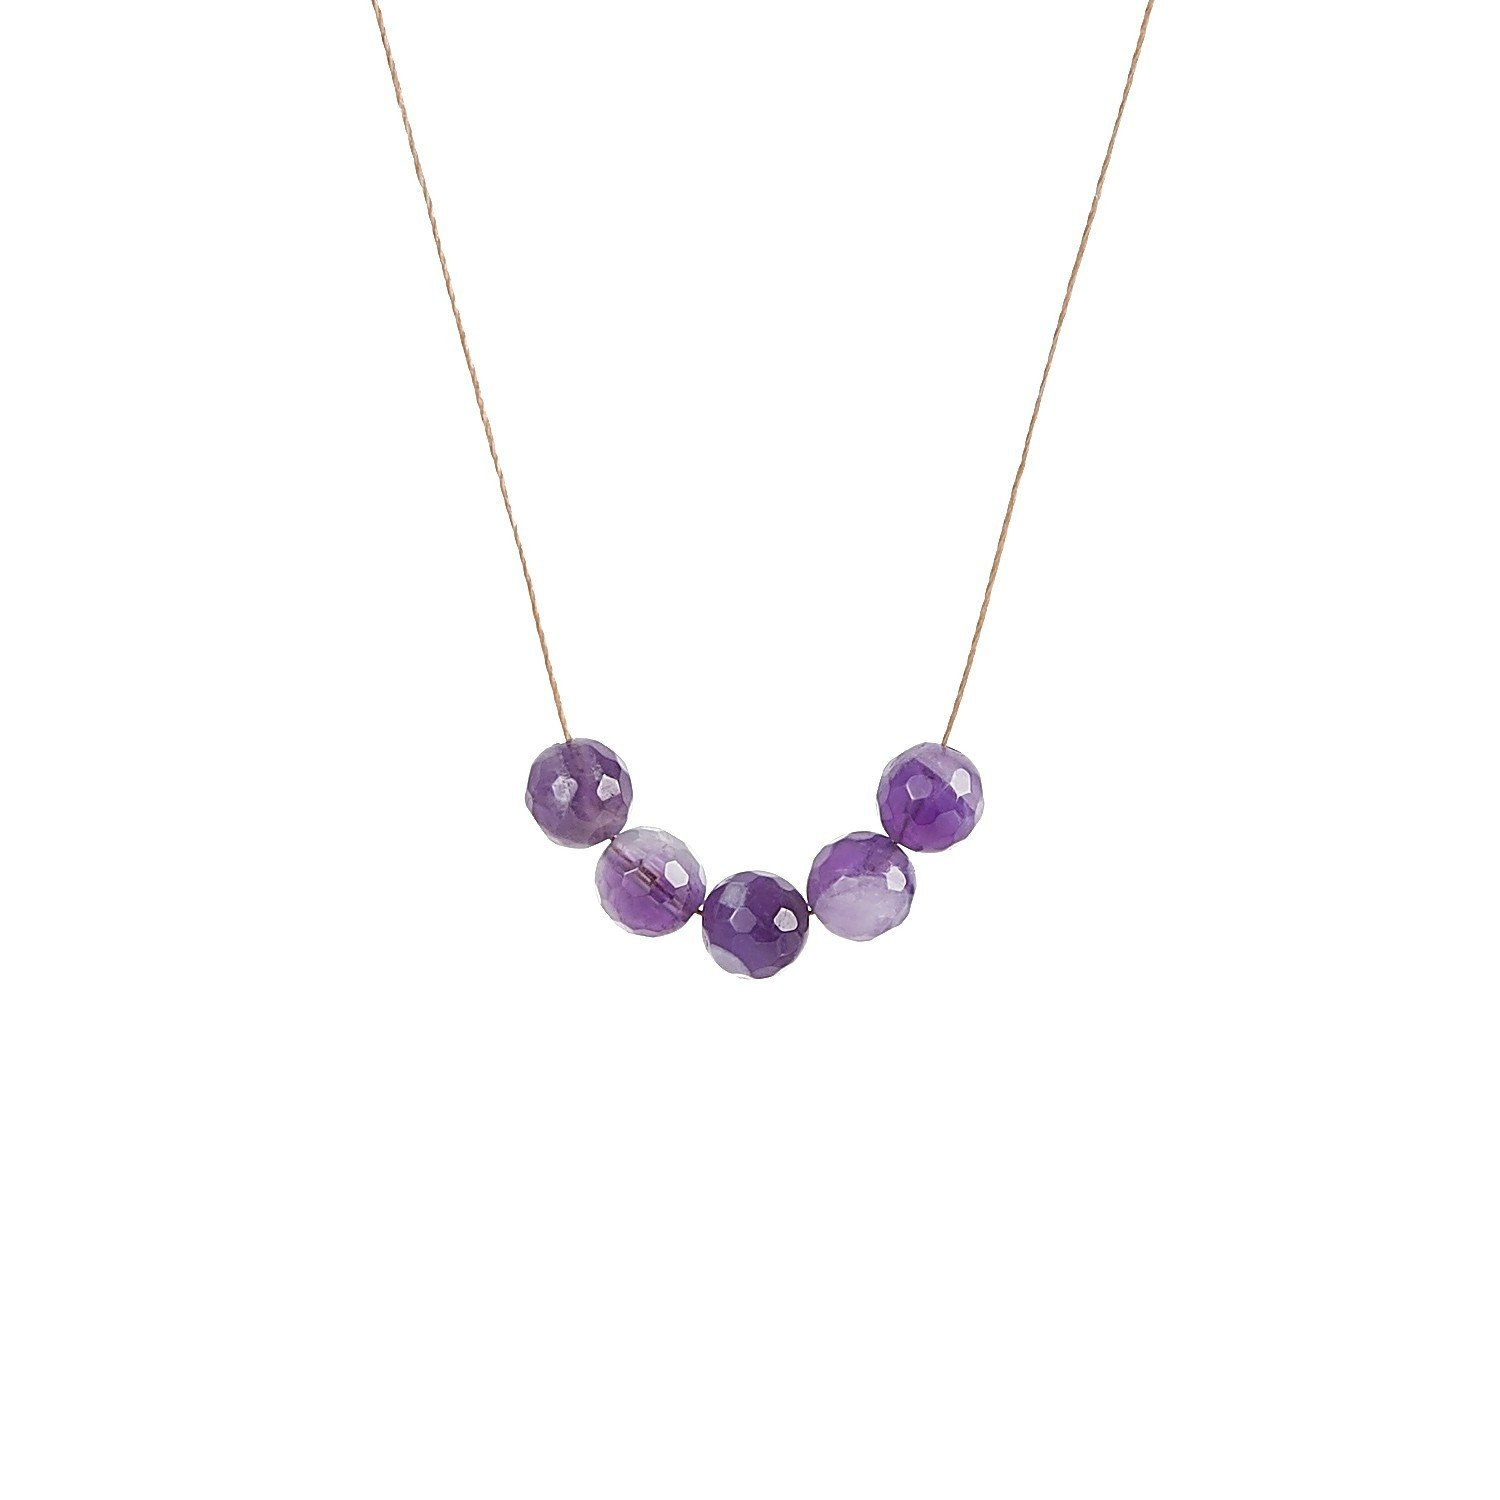 Amethyst Intention Necklace for Empowerment and Healing